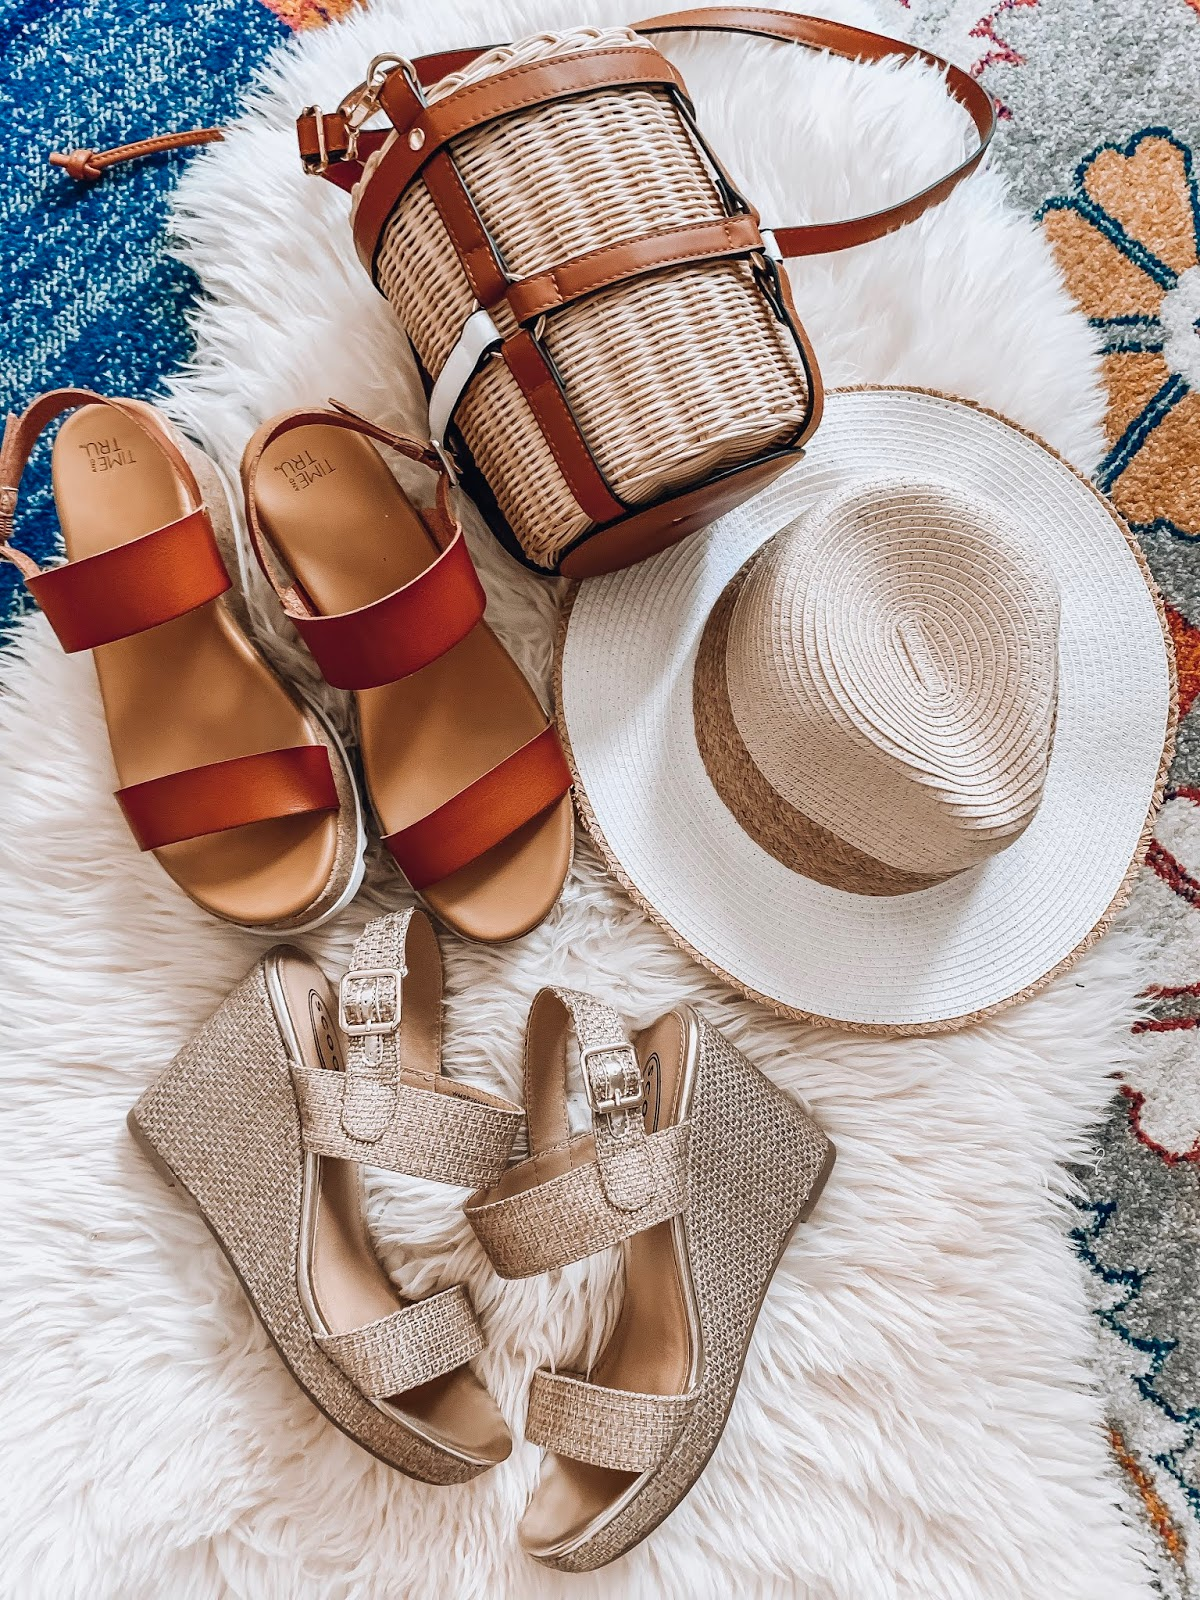 Spring & Summer Finds With Walmart - Something Delightful Blog @racheltimmerman #SpringFashion #Spring2020 #SummerFashion #WalmartFashion #AffordableFashion #EverydayStyle #SwimStyle